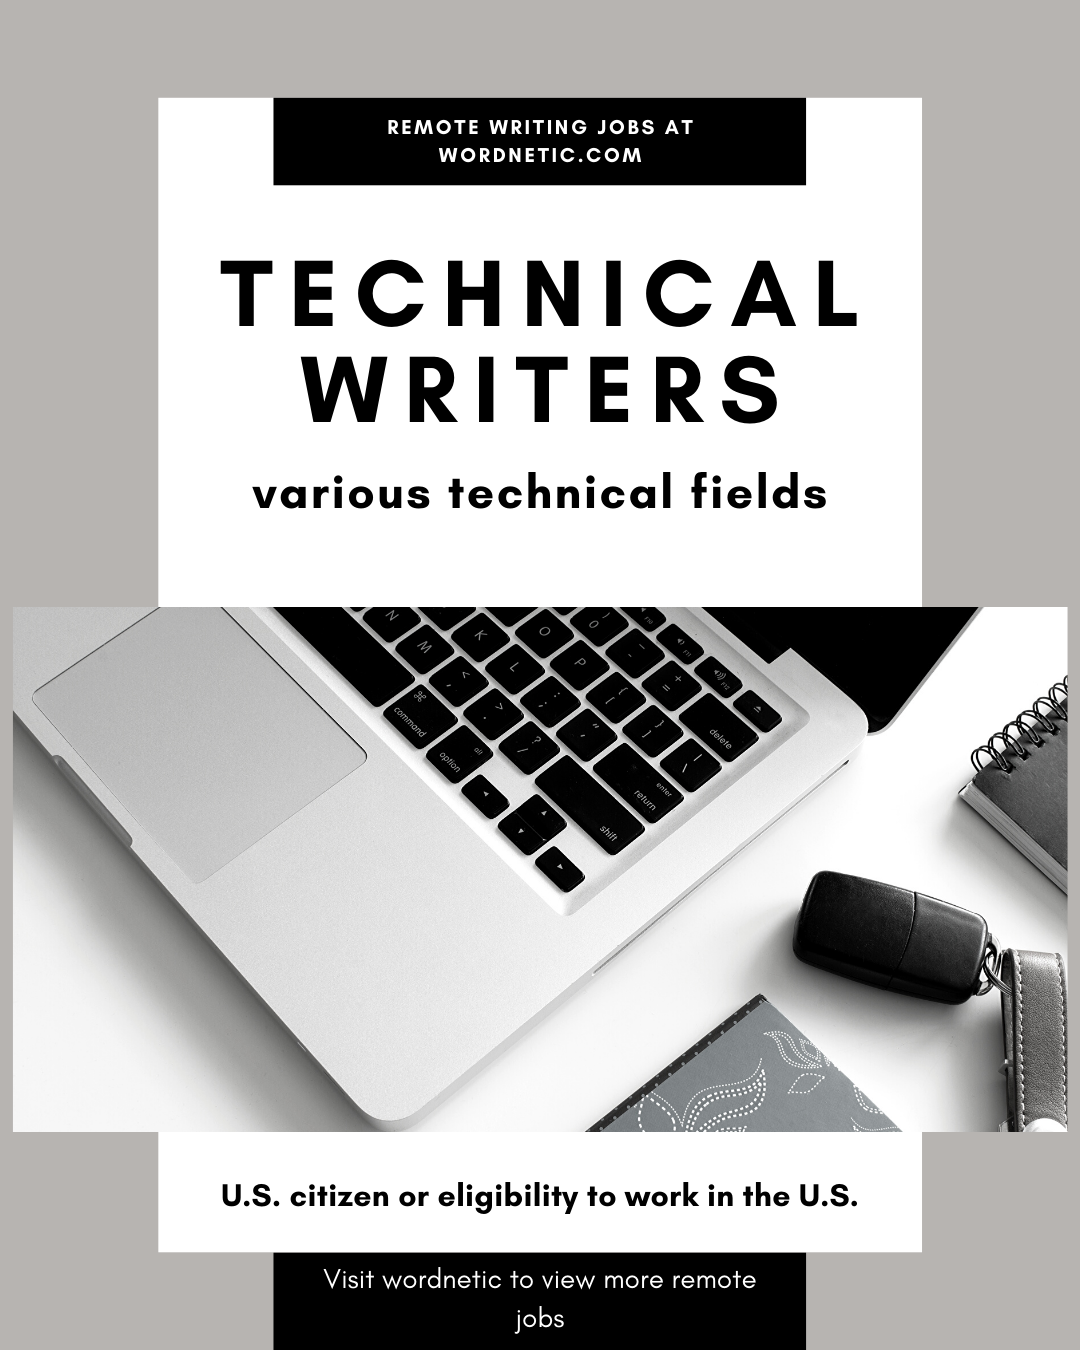 Remote Writing Jobs Wordnetic In 2020 Computer Components Writing Jobs Computer Hardware